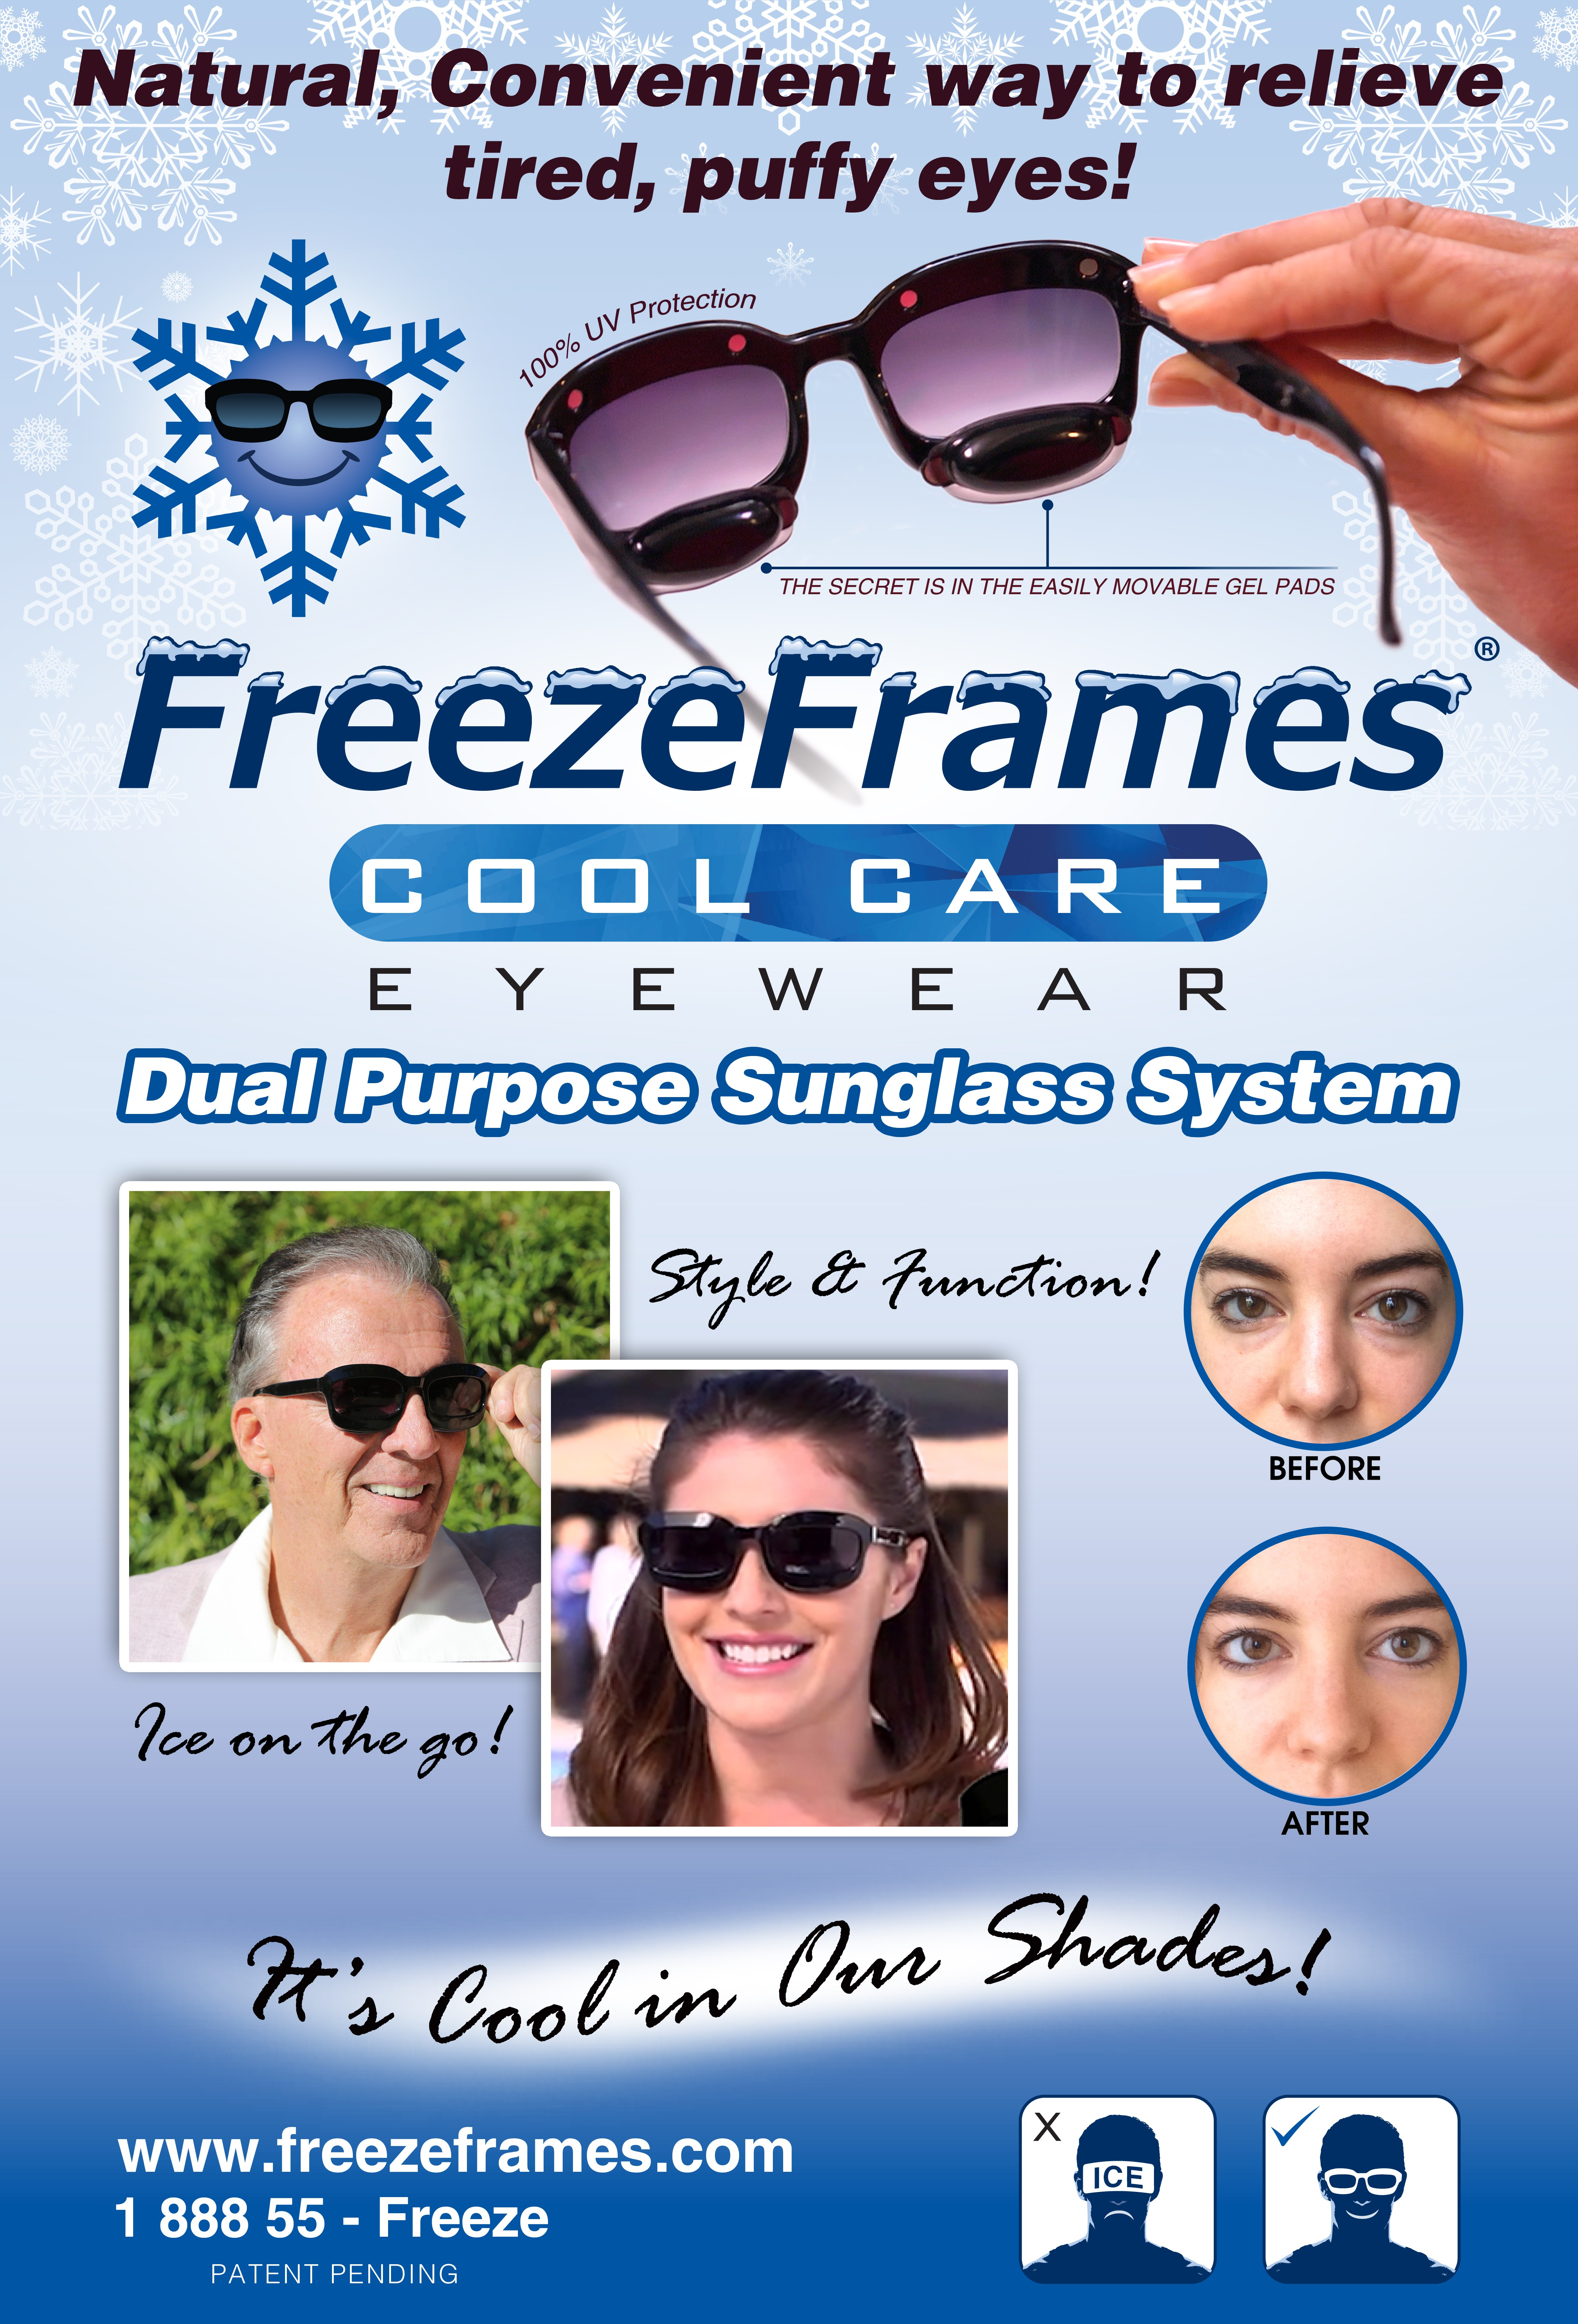 FreezeFremes booth banner